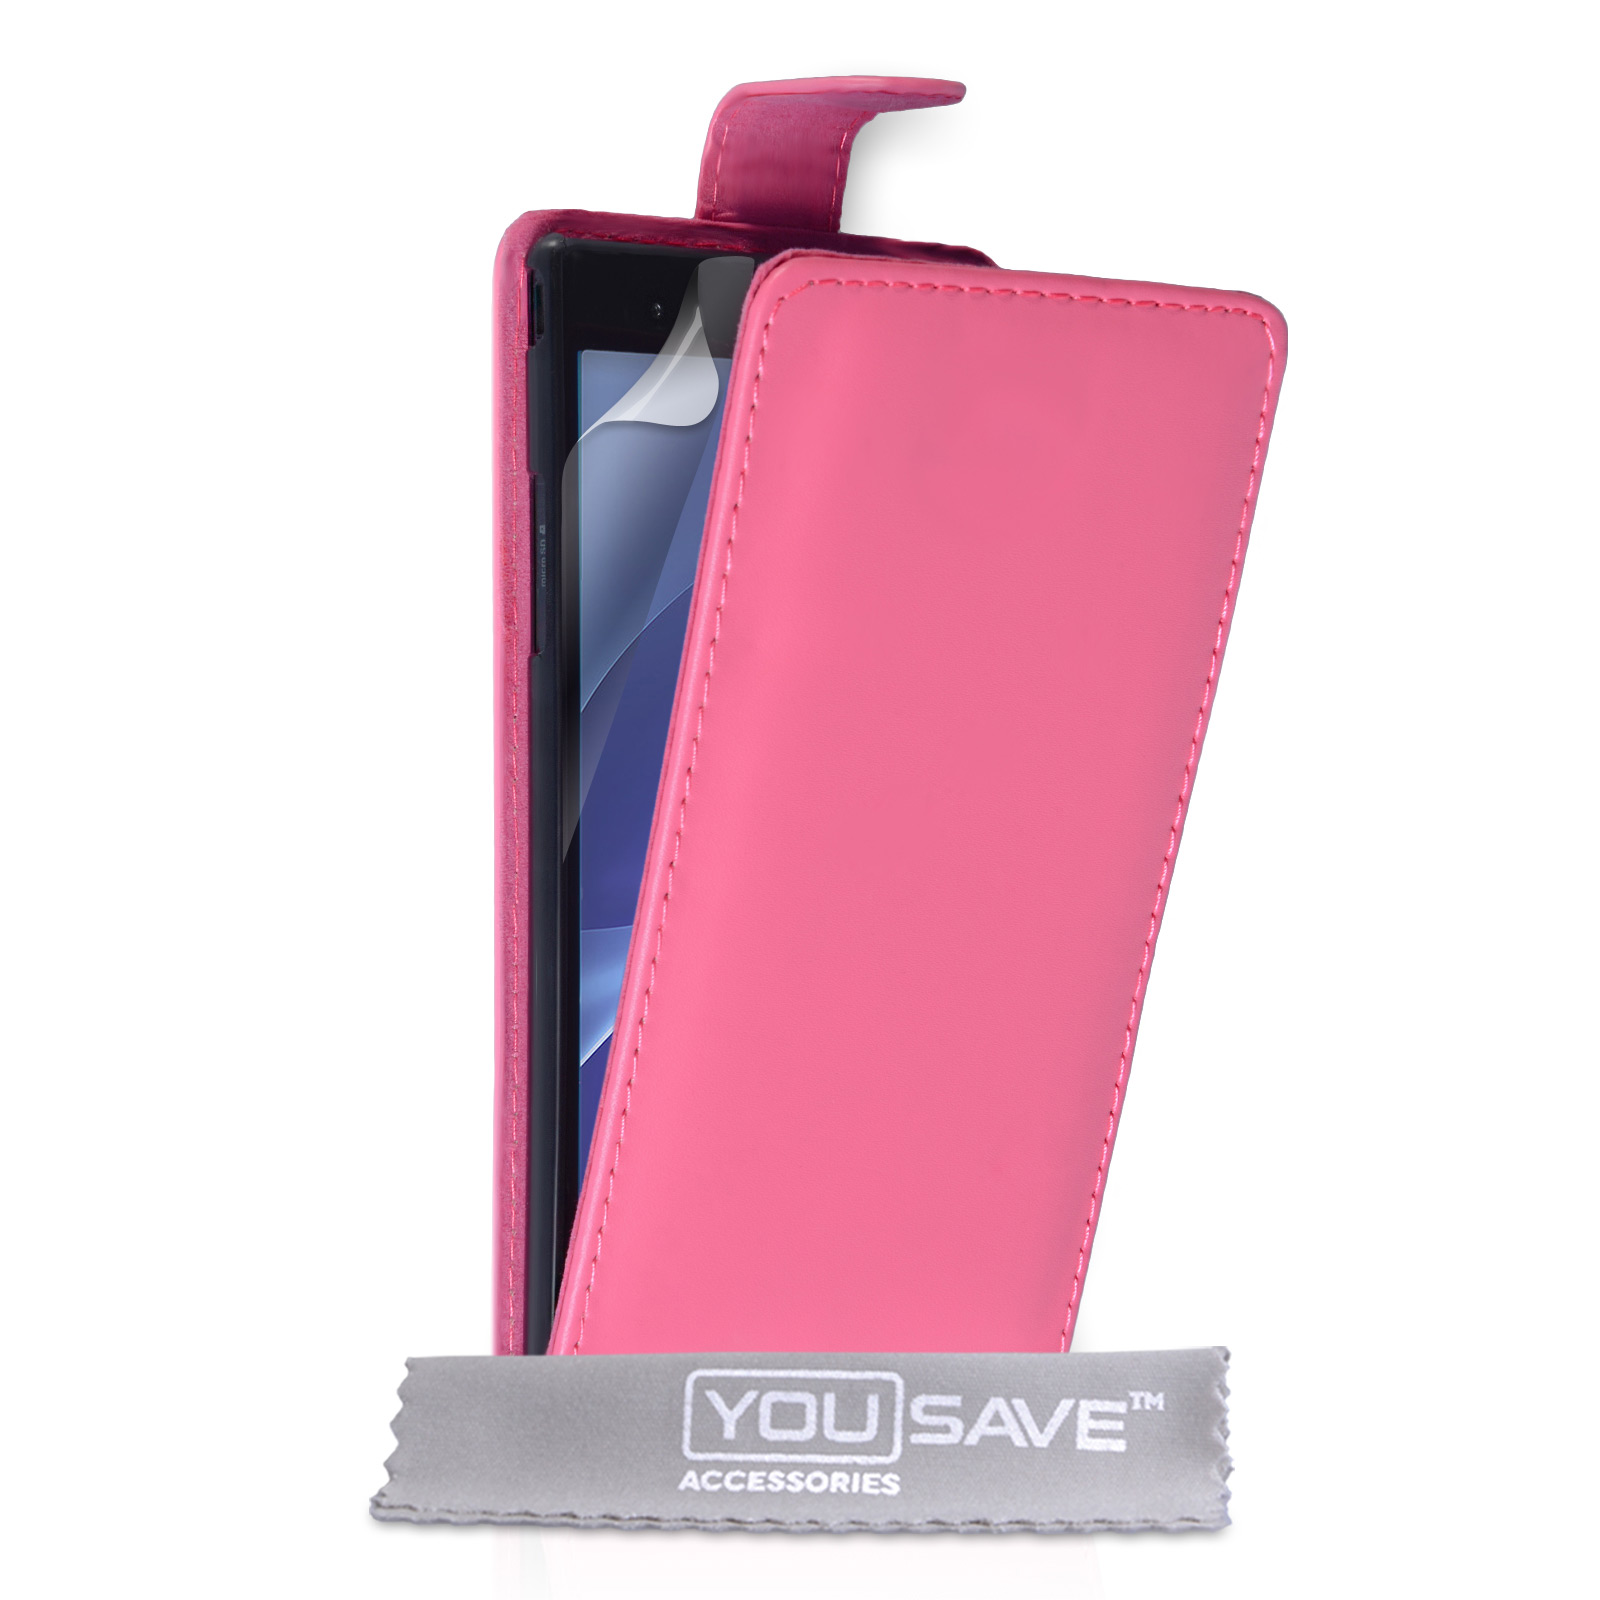 YouSave Sony Xperia T2 Ultra Leather-Effect Flip Case - Hot Pink